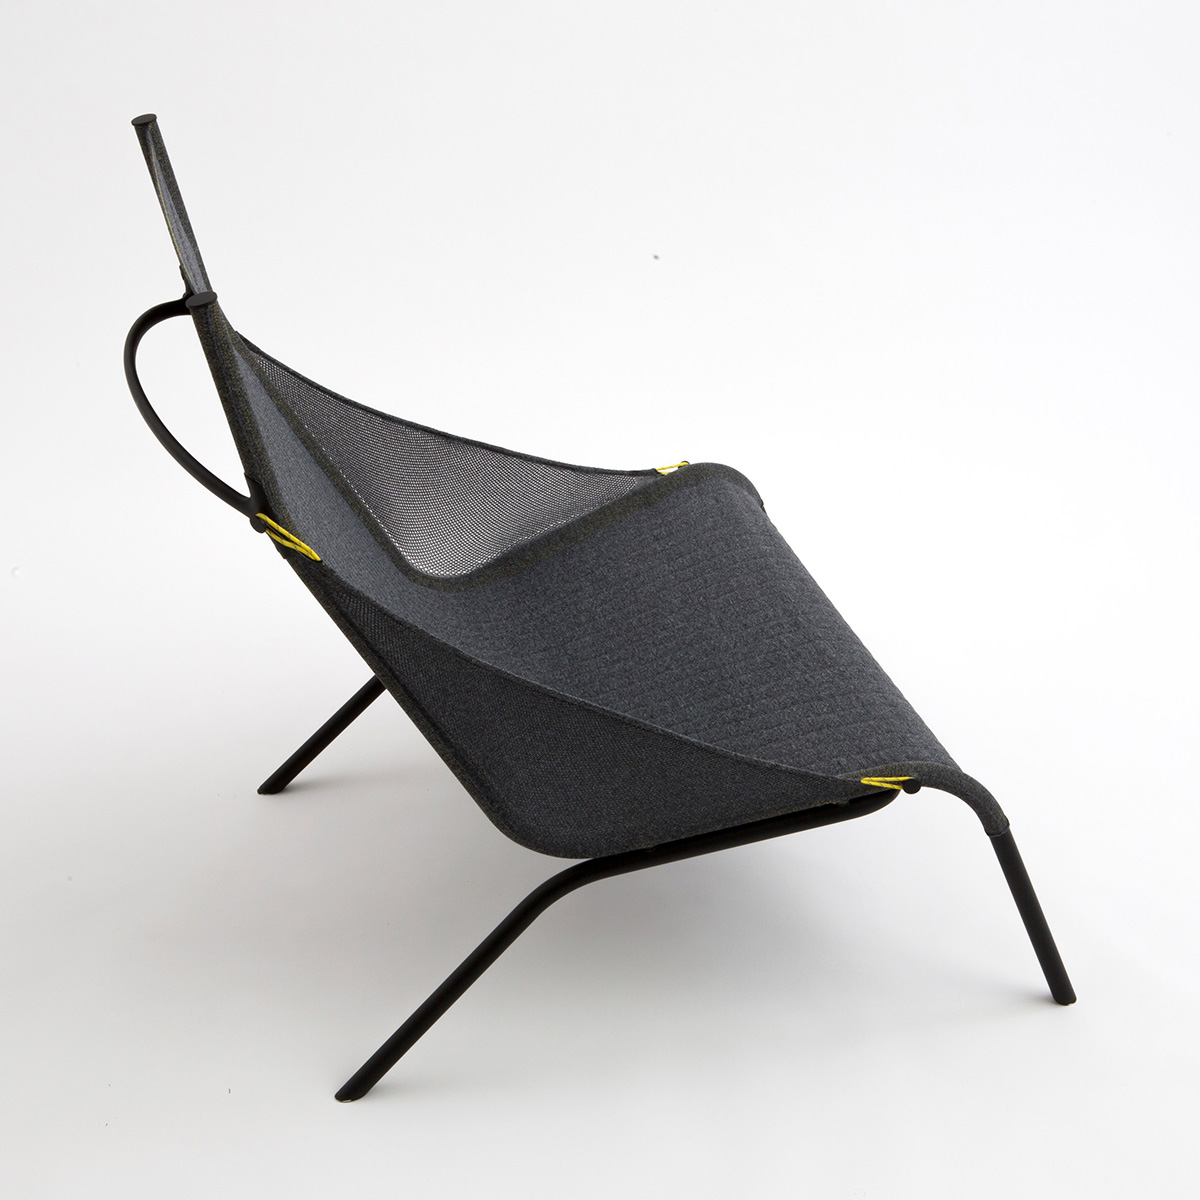 03-tent-chair-layer-design